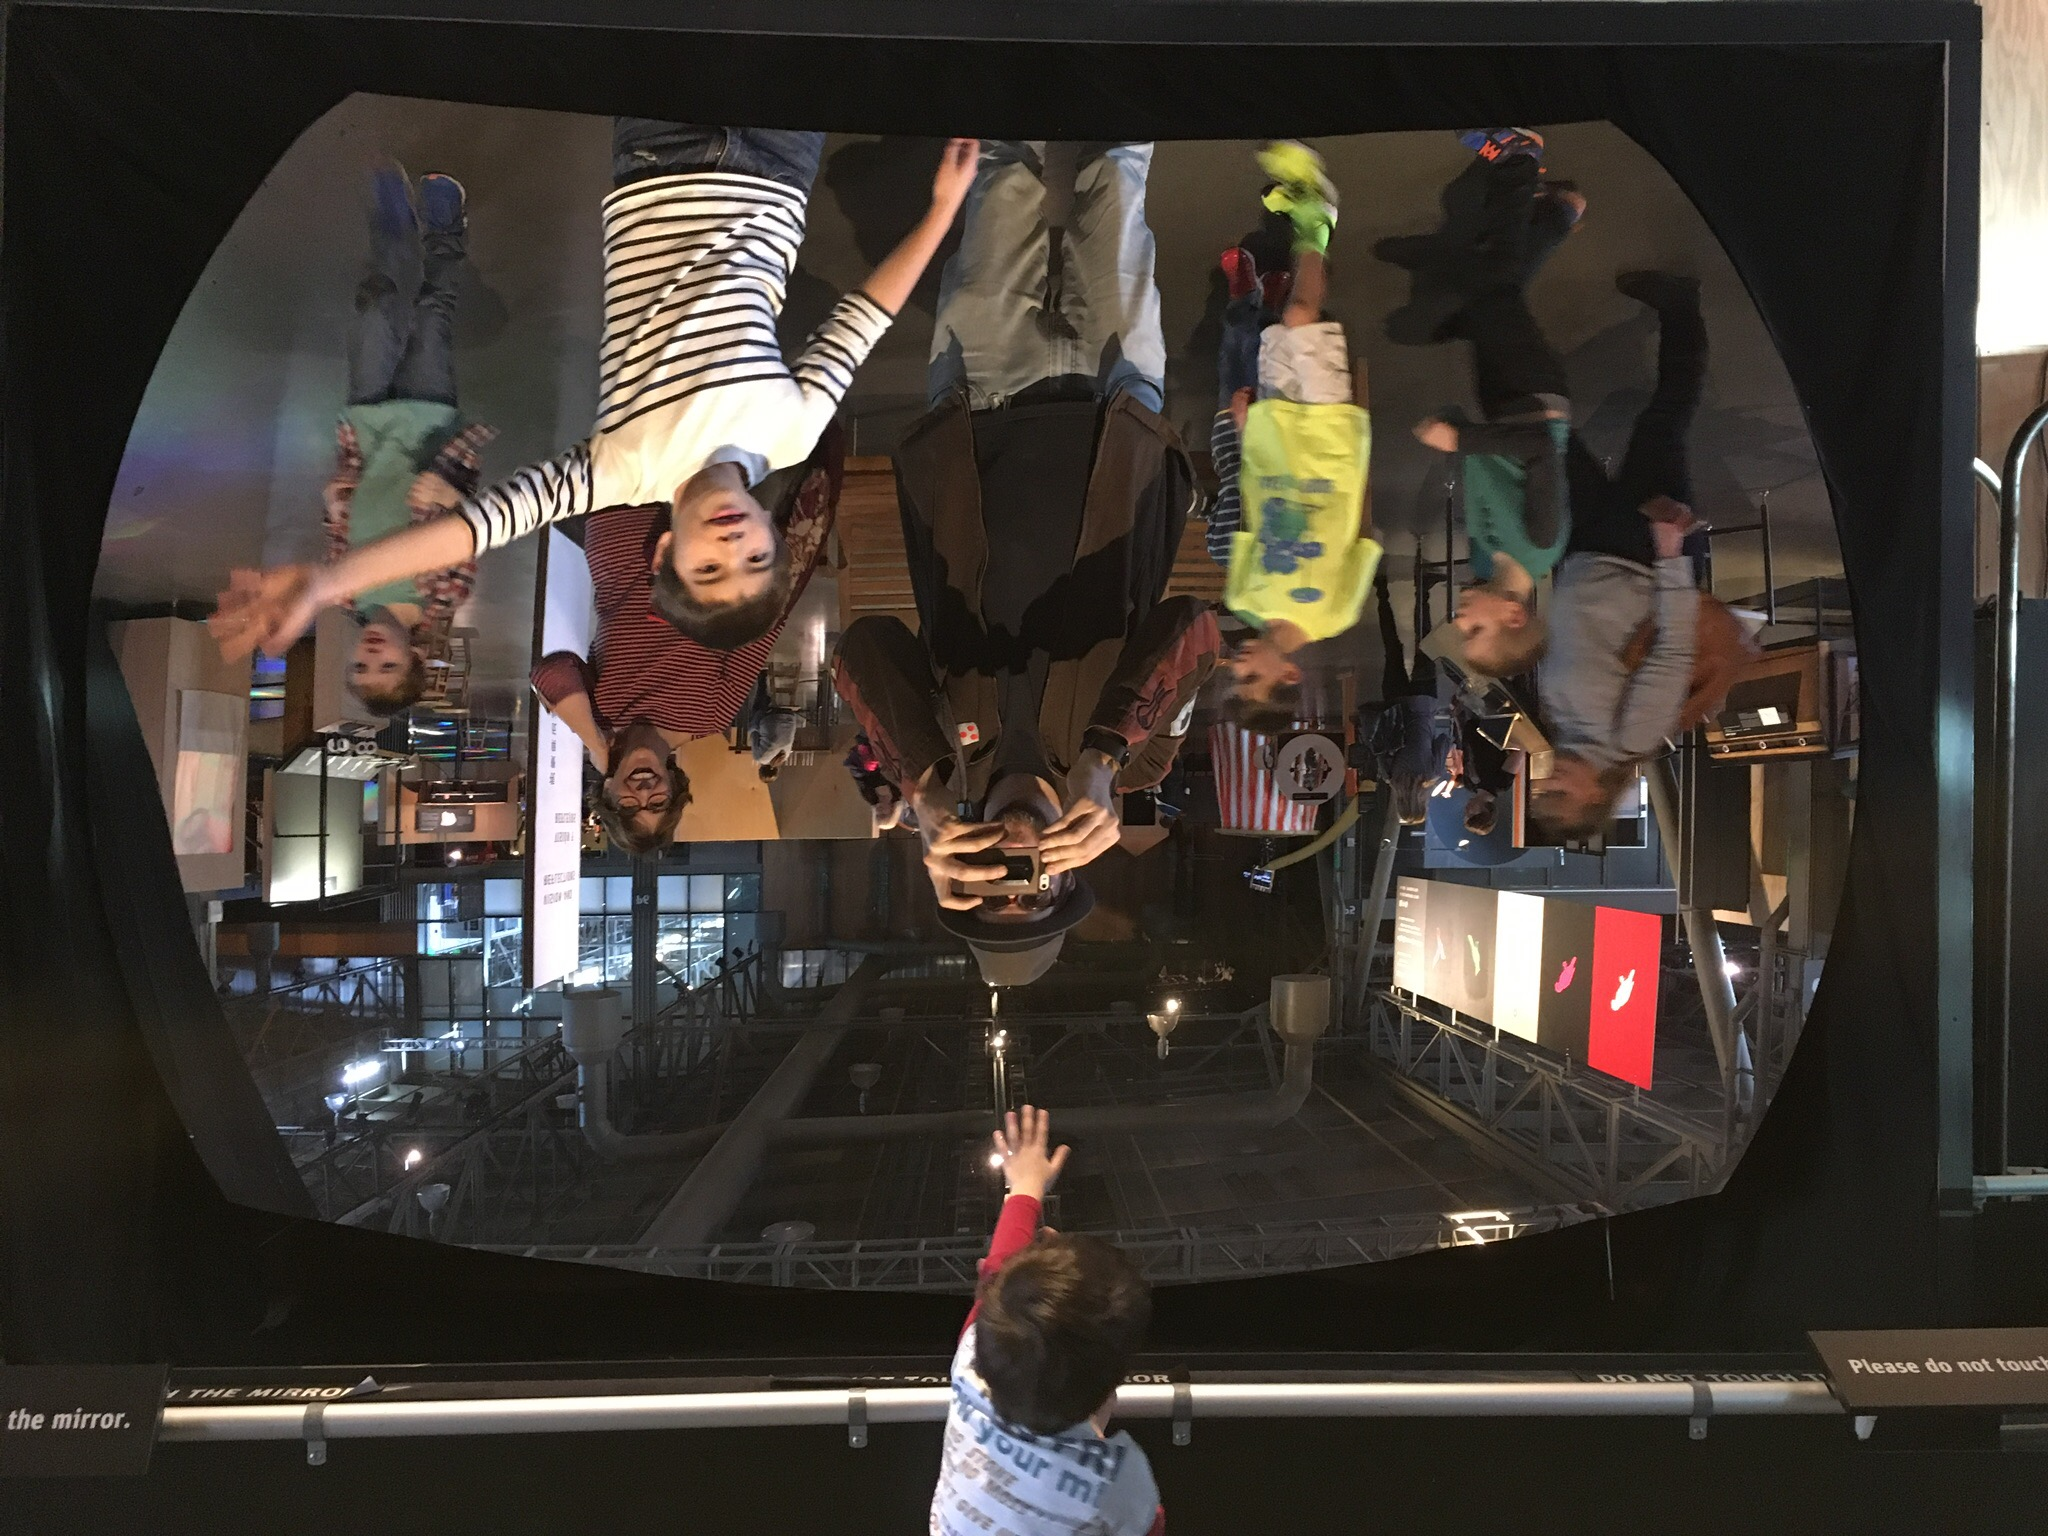 Exploratorium giant mirror exhibit